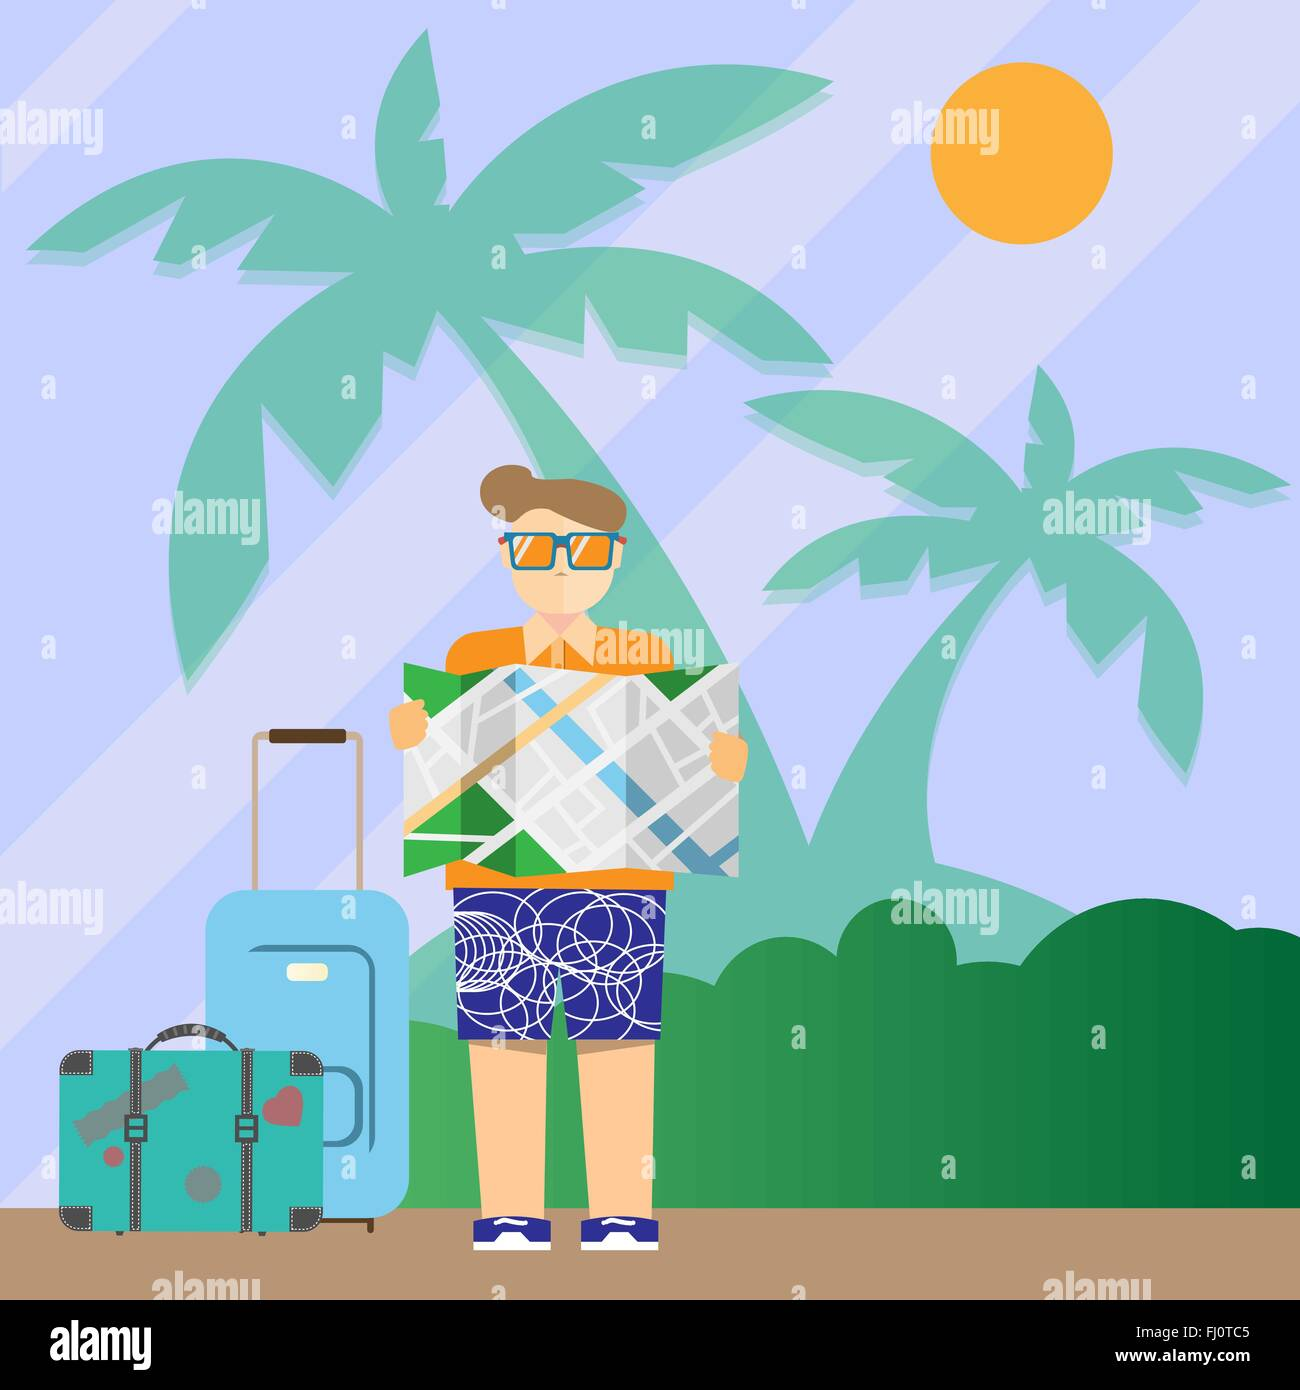 Tourist with map and suitcases. Travel digital vector background colorful illustration. Last minute deal leaflet. - Stock Image